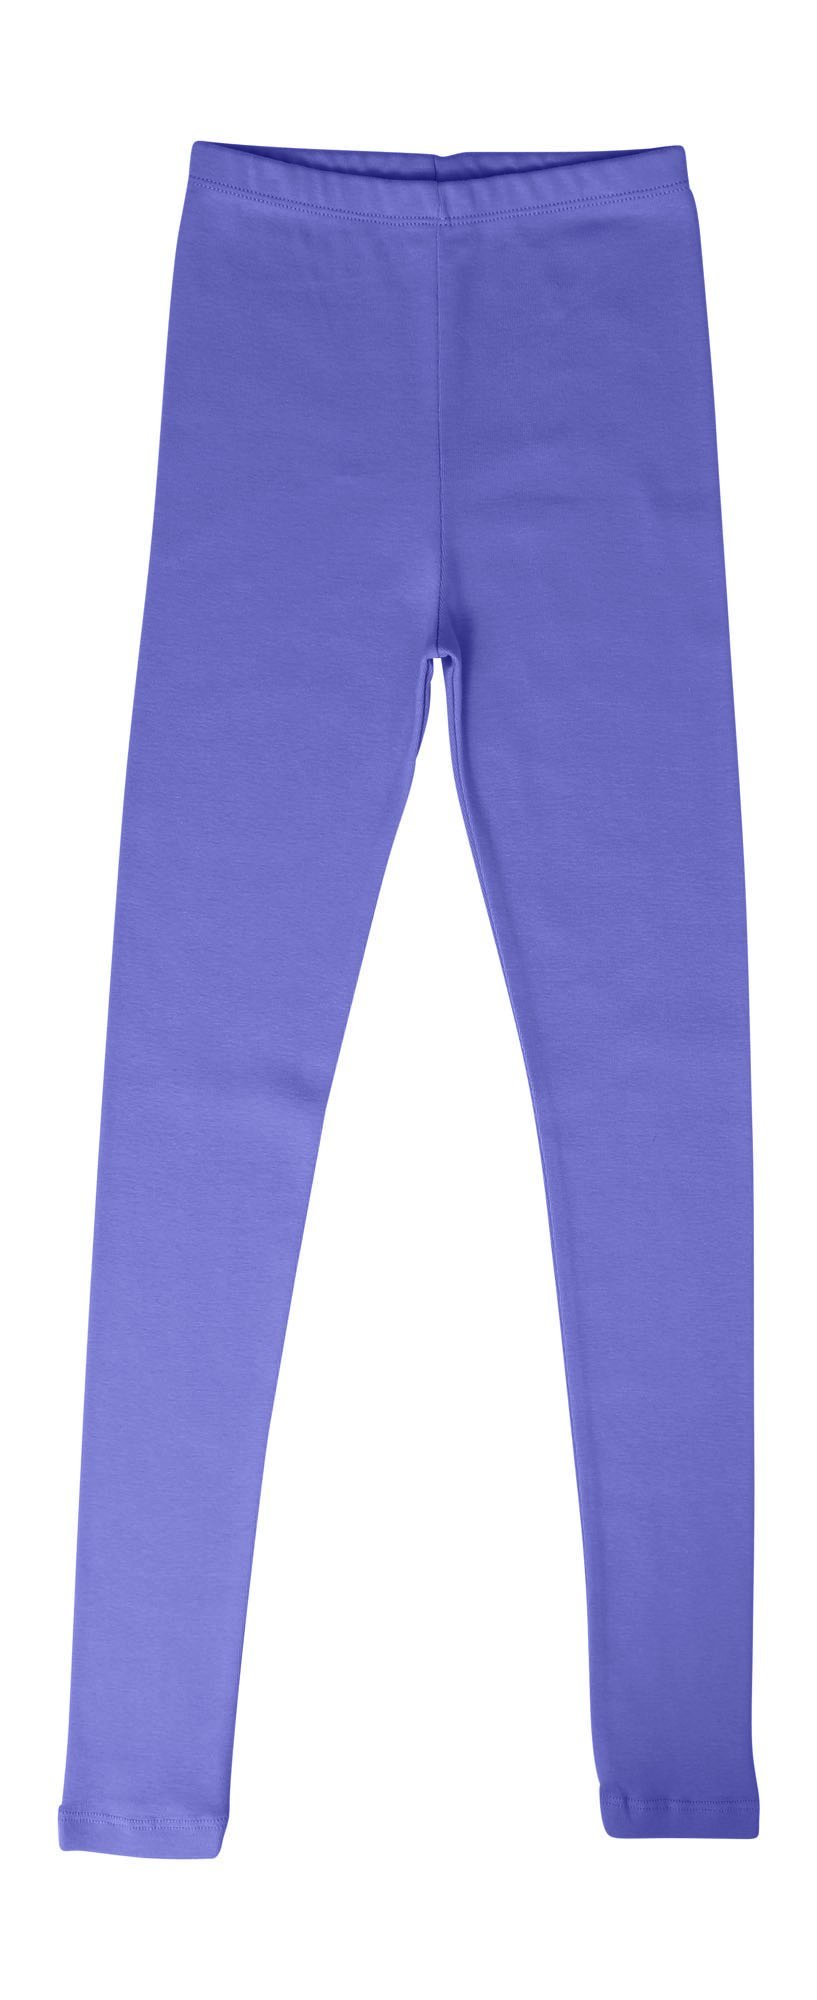 CAOMP Girls'%100 Organic Cotton Leggings for School or Play (5-6, Purple)